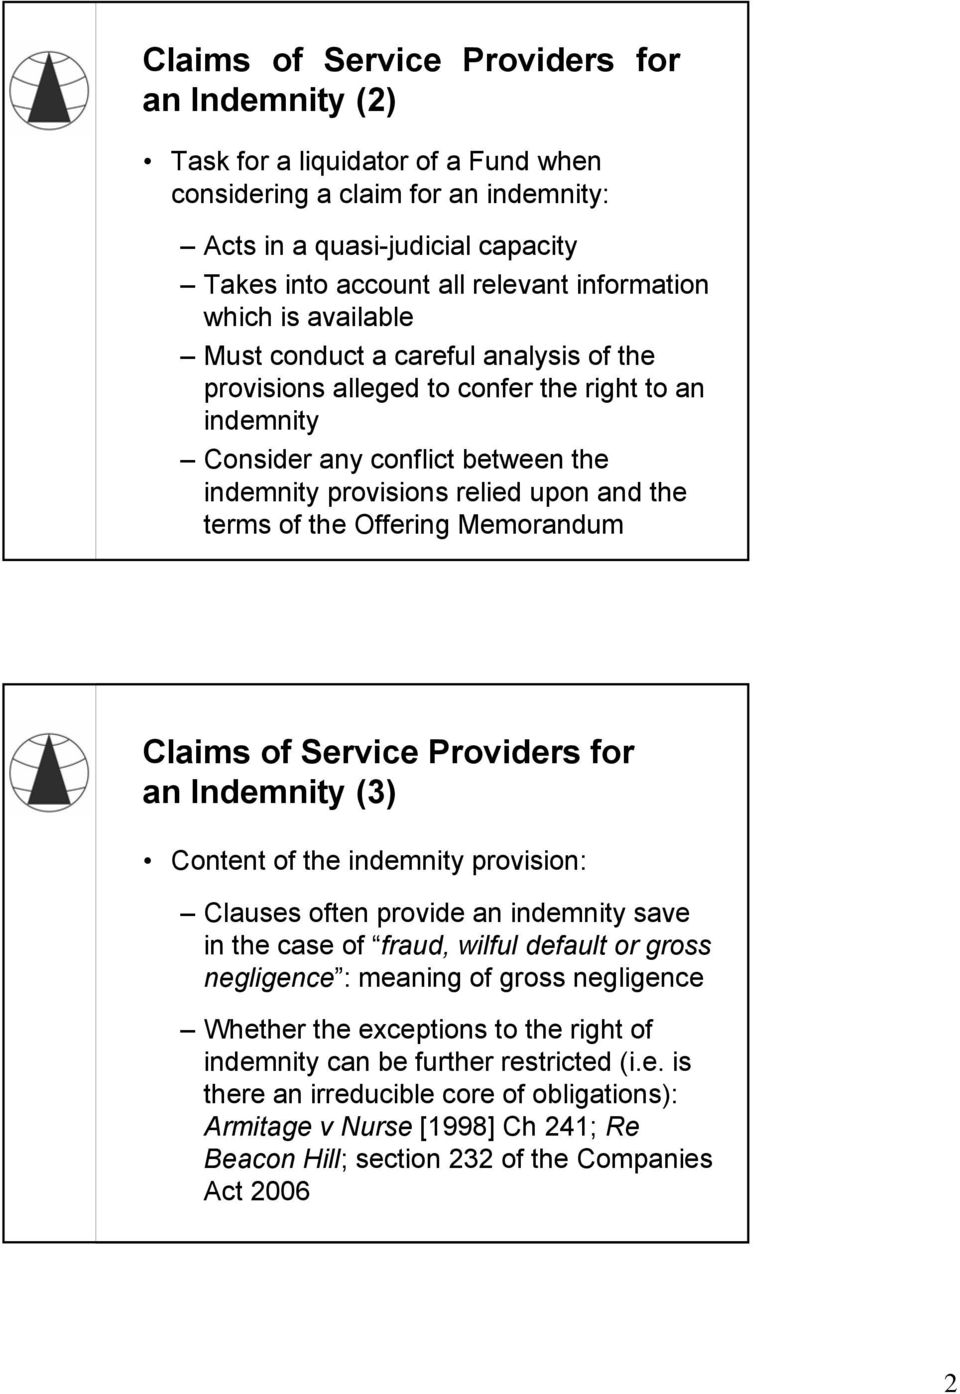 terms of the Offering Memorandum Claims of Service Providers for an Indemnity (3) Content of the indemnity provision: Clauses often provide an indemnity save in the case of fraud, wilful default or